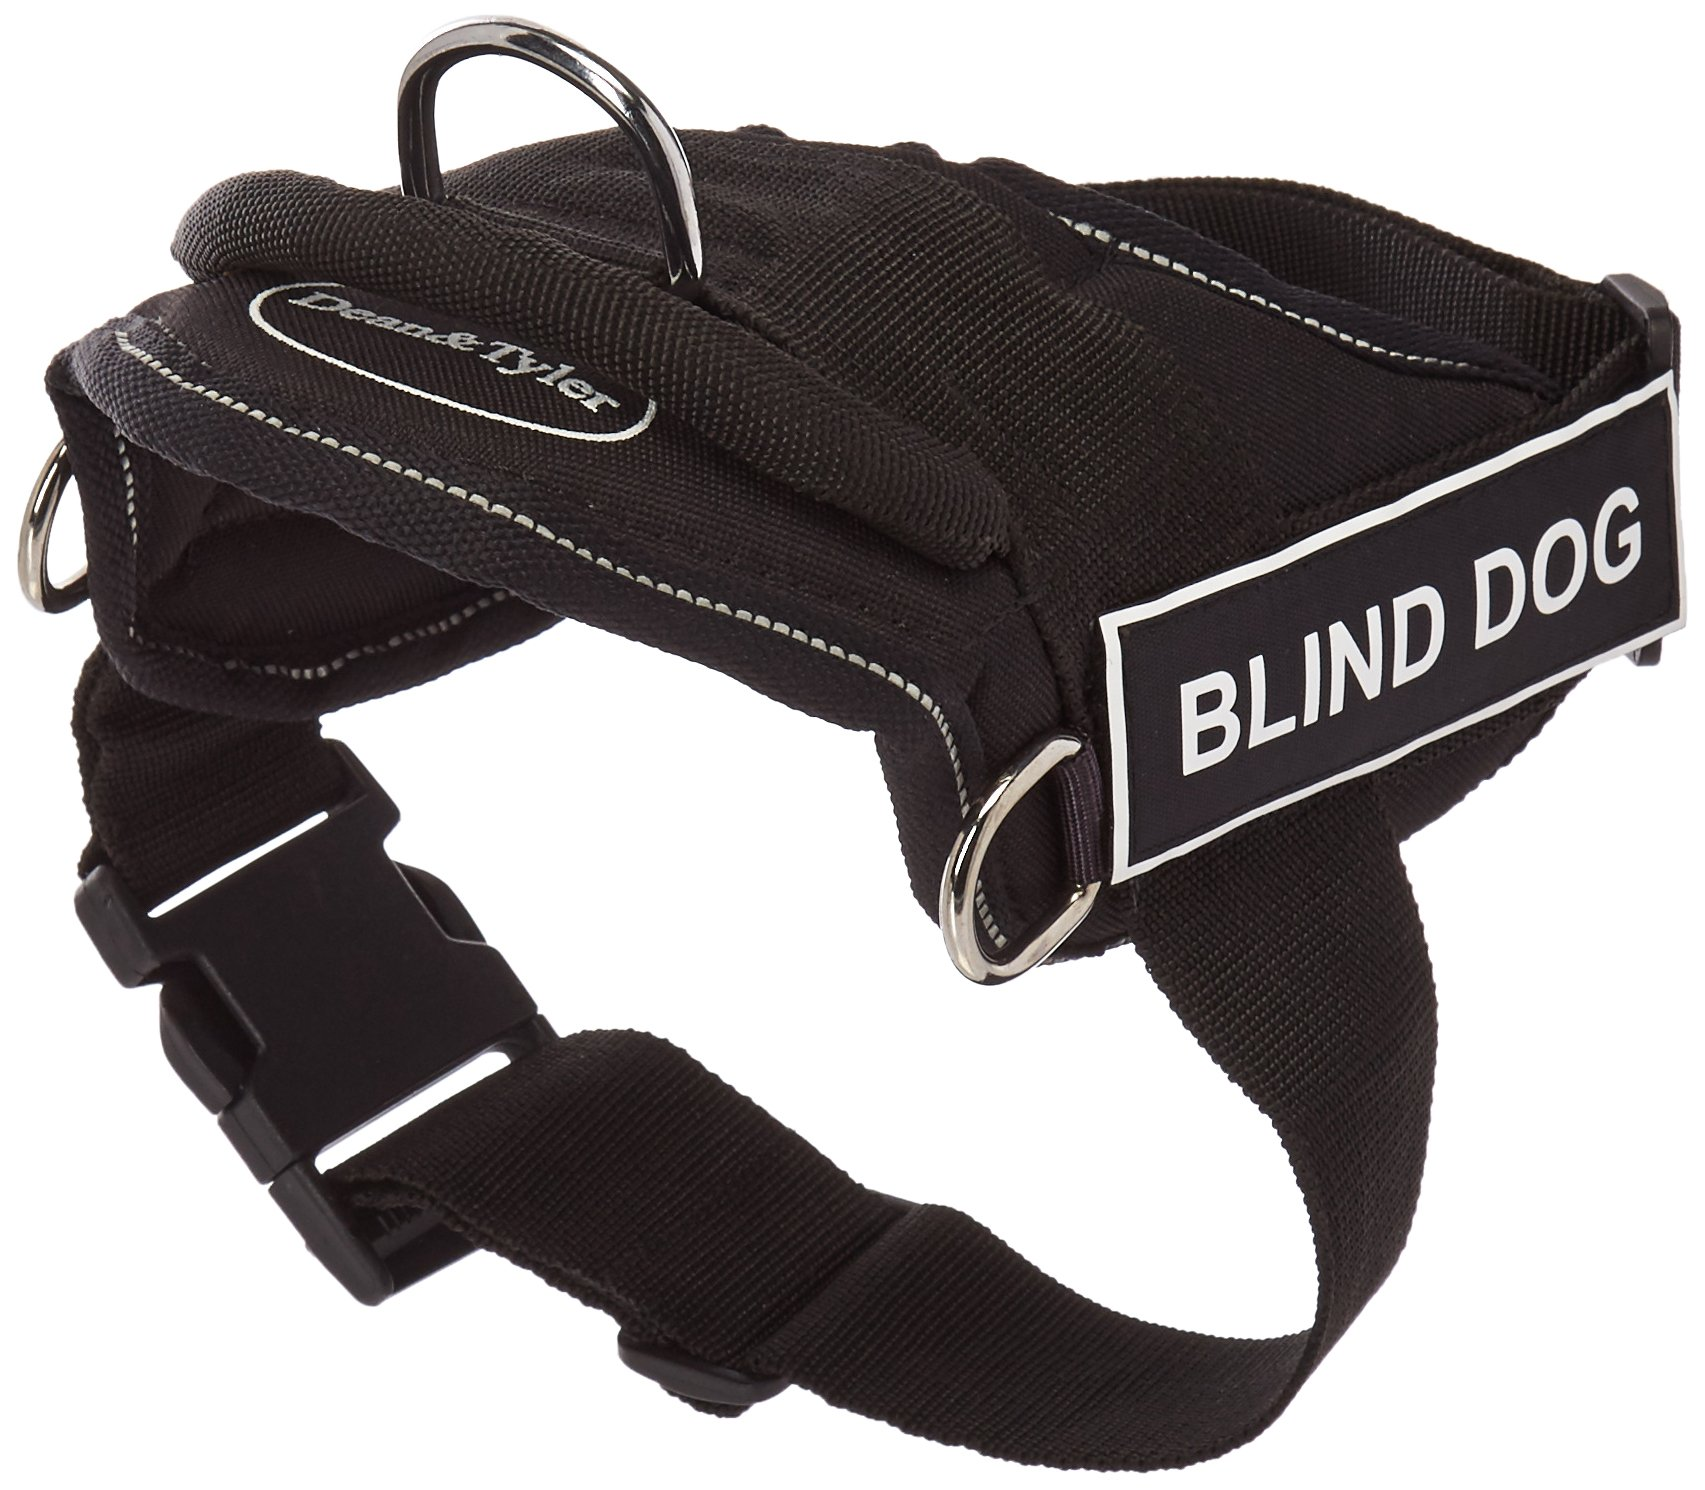 Dean & Tyler 22 by 27-Inch Blind Dog Harness with 6-Feet Padded Puppy Leash, Black